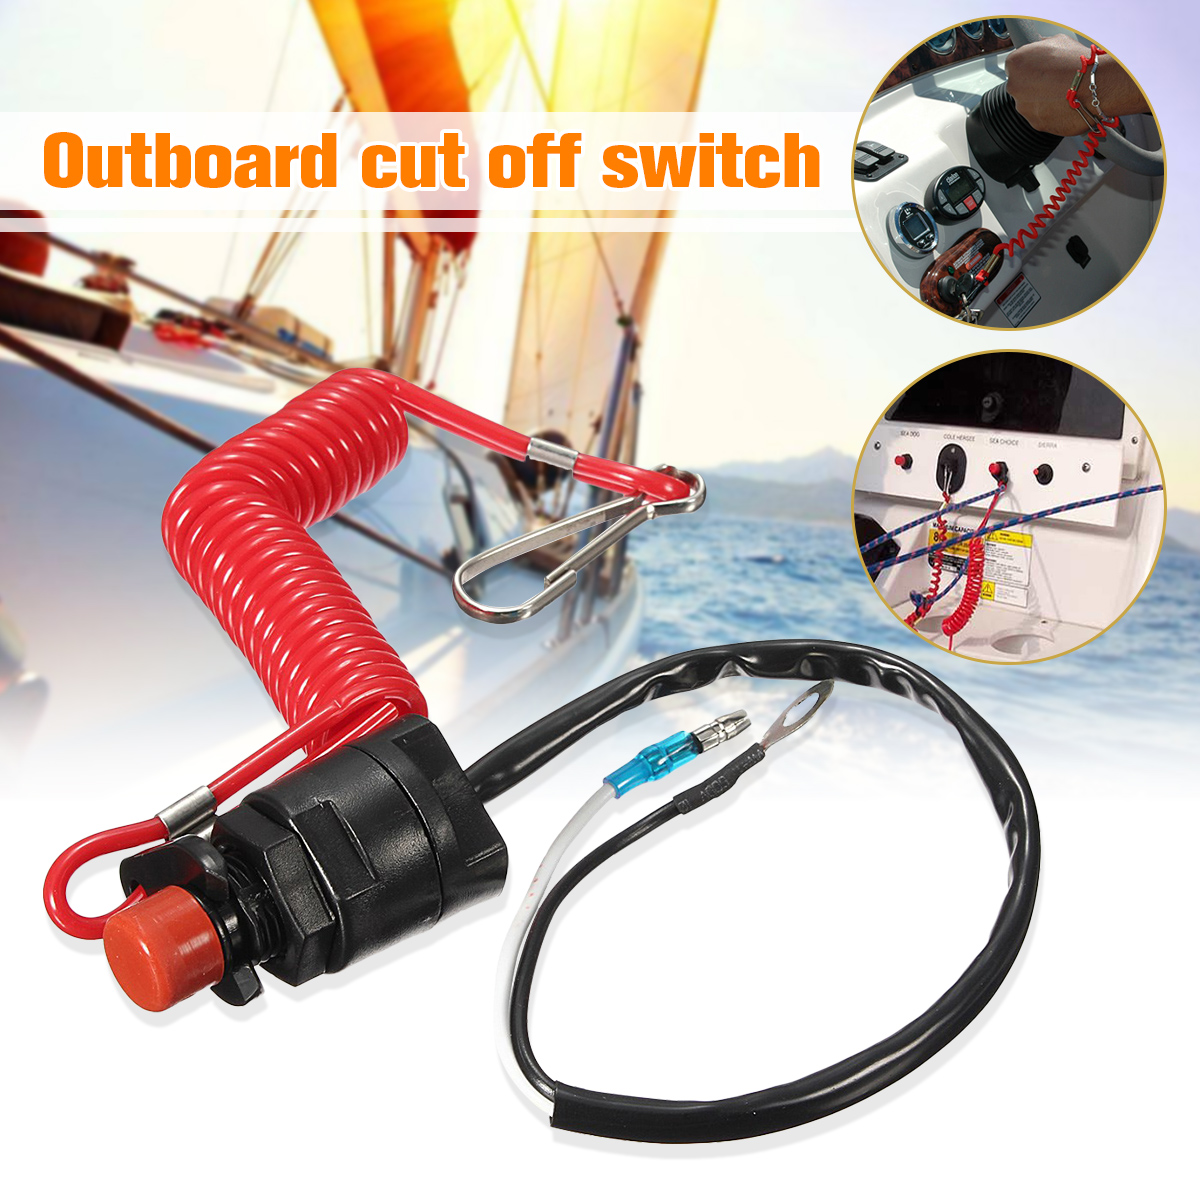 Boat Motor for Yamaha /Tohatsu Outboard stop Kill Cut off Switch Safety Tether